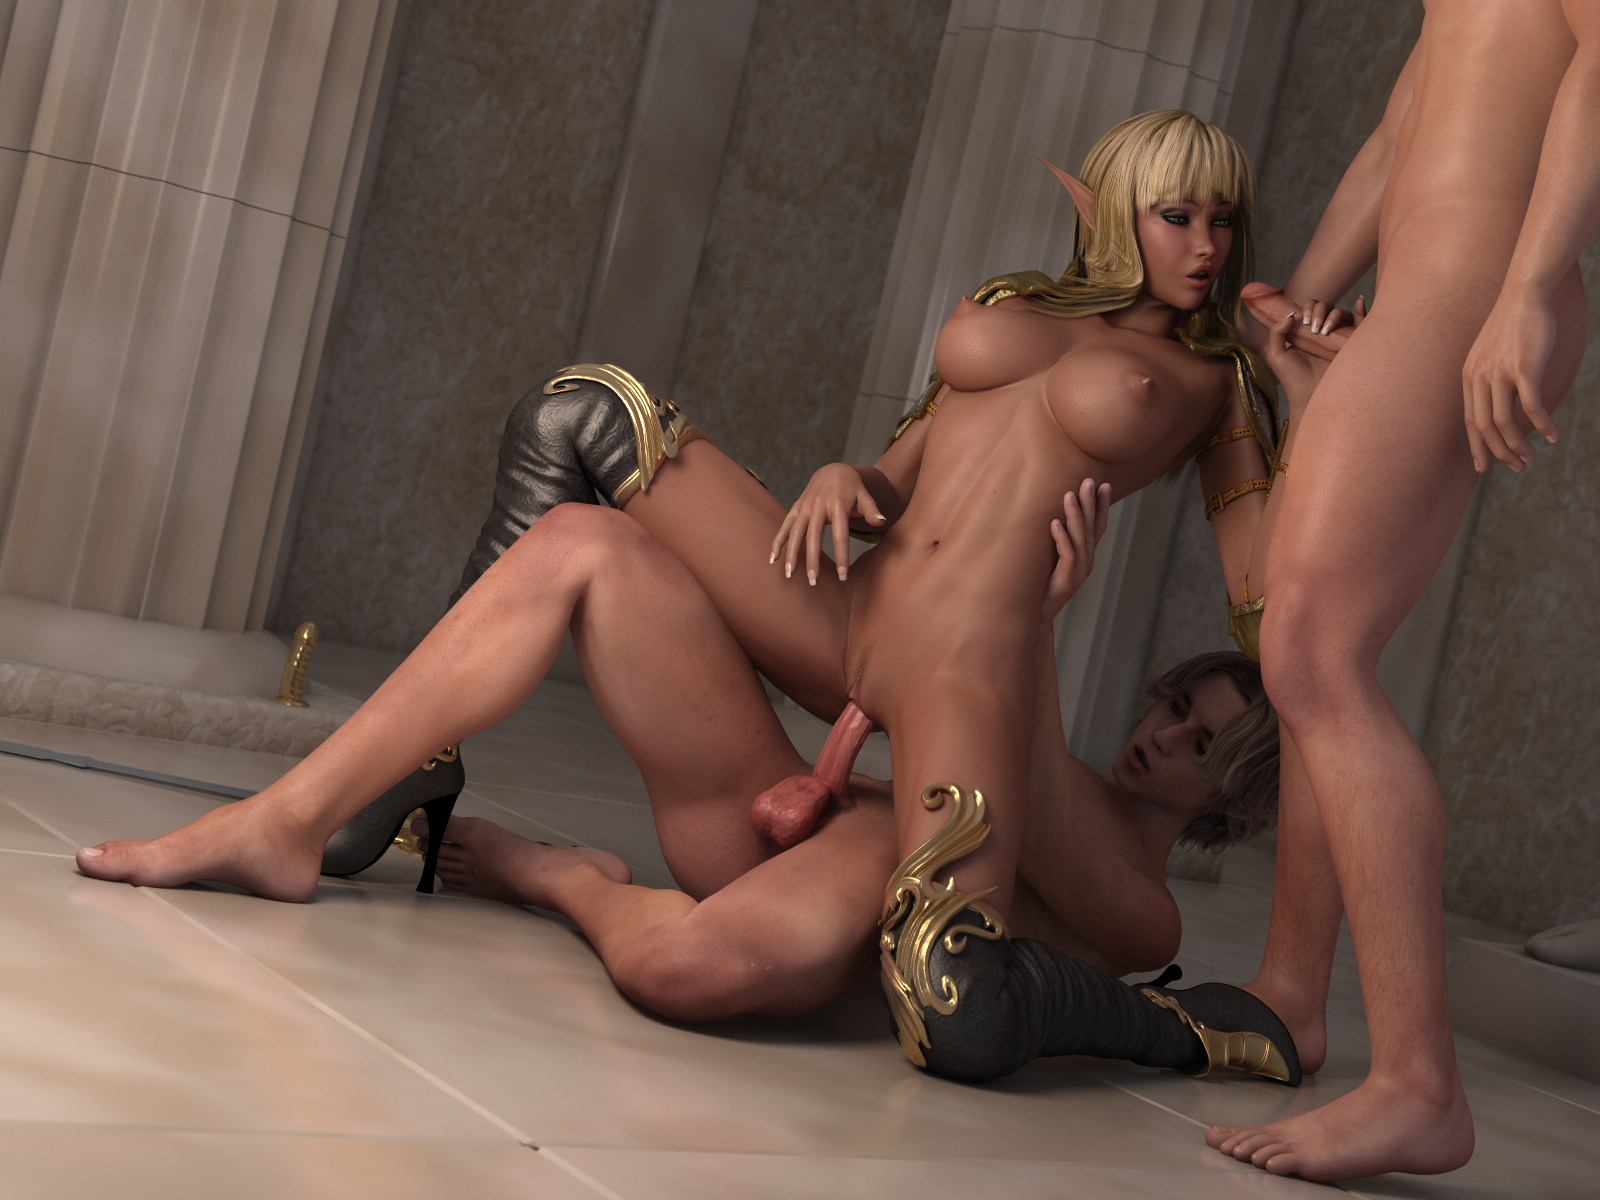 3d sexgams porncraft pictures